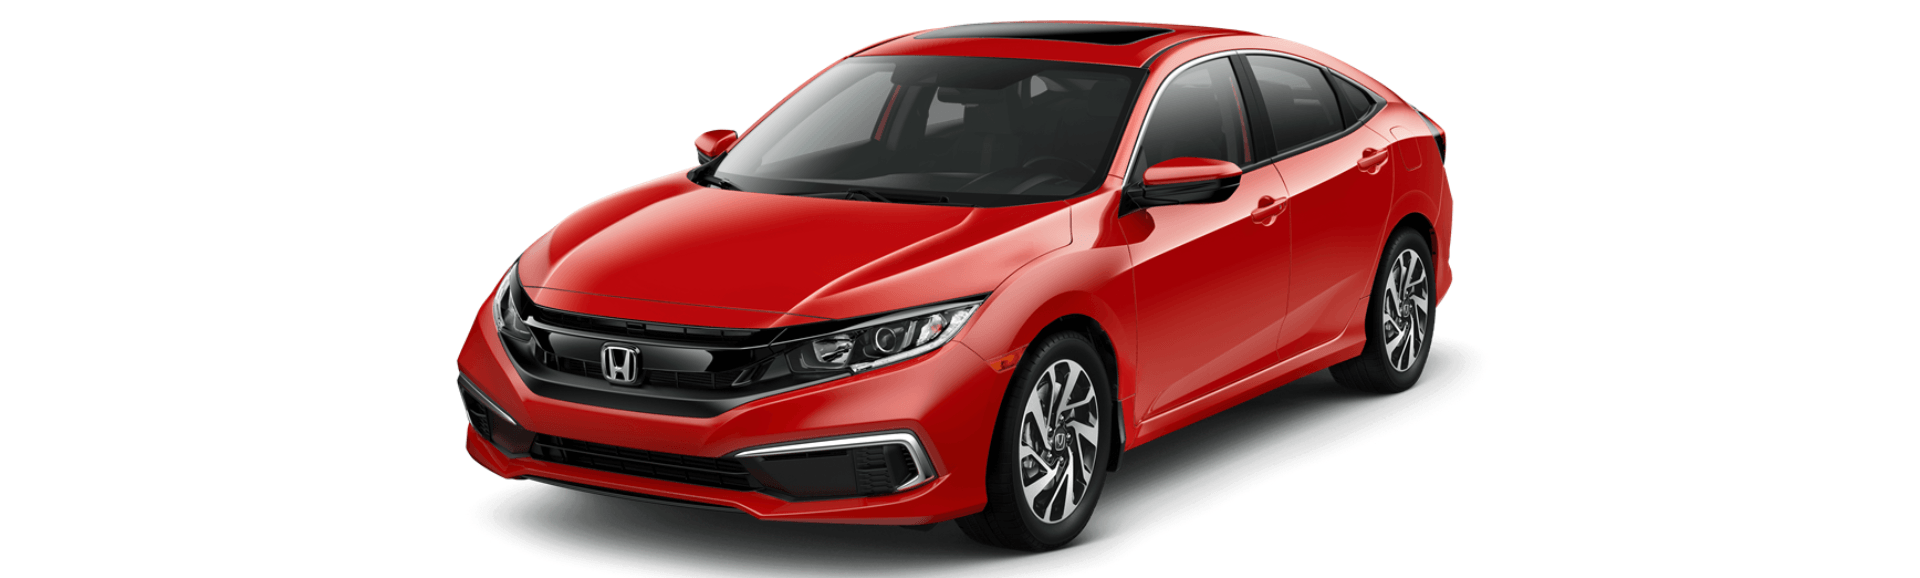 2020 Honda Civic Sedan EX header